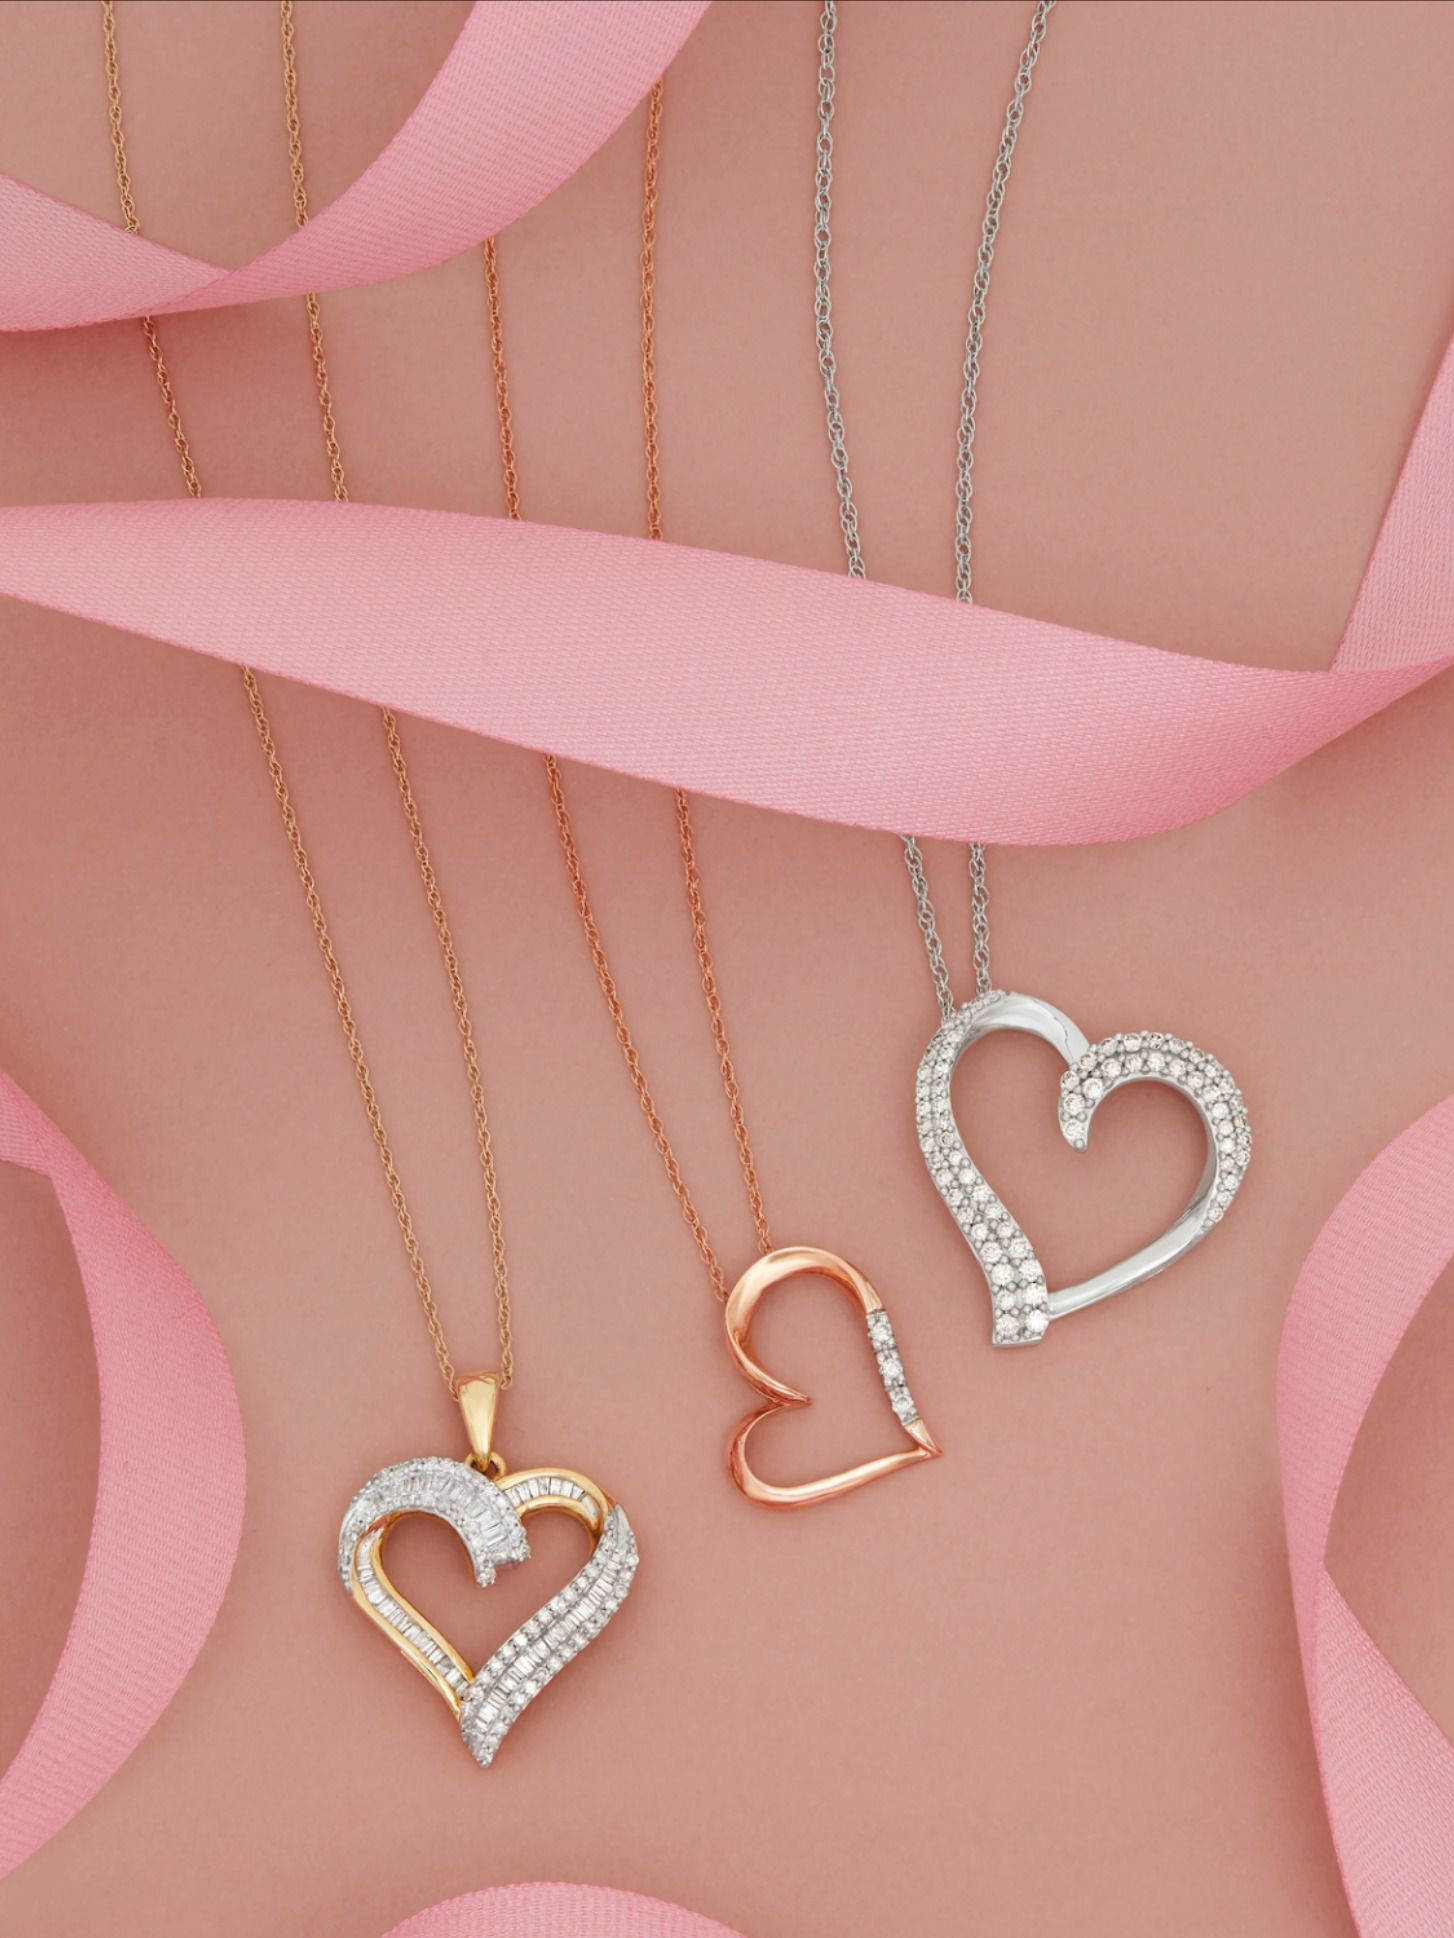 If You Can T Find The Right Words At Least Find The Right Diamond Lovezales In 2020 Valentines Jewelry Shop Valentines Valentine Day Special